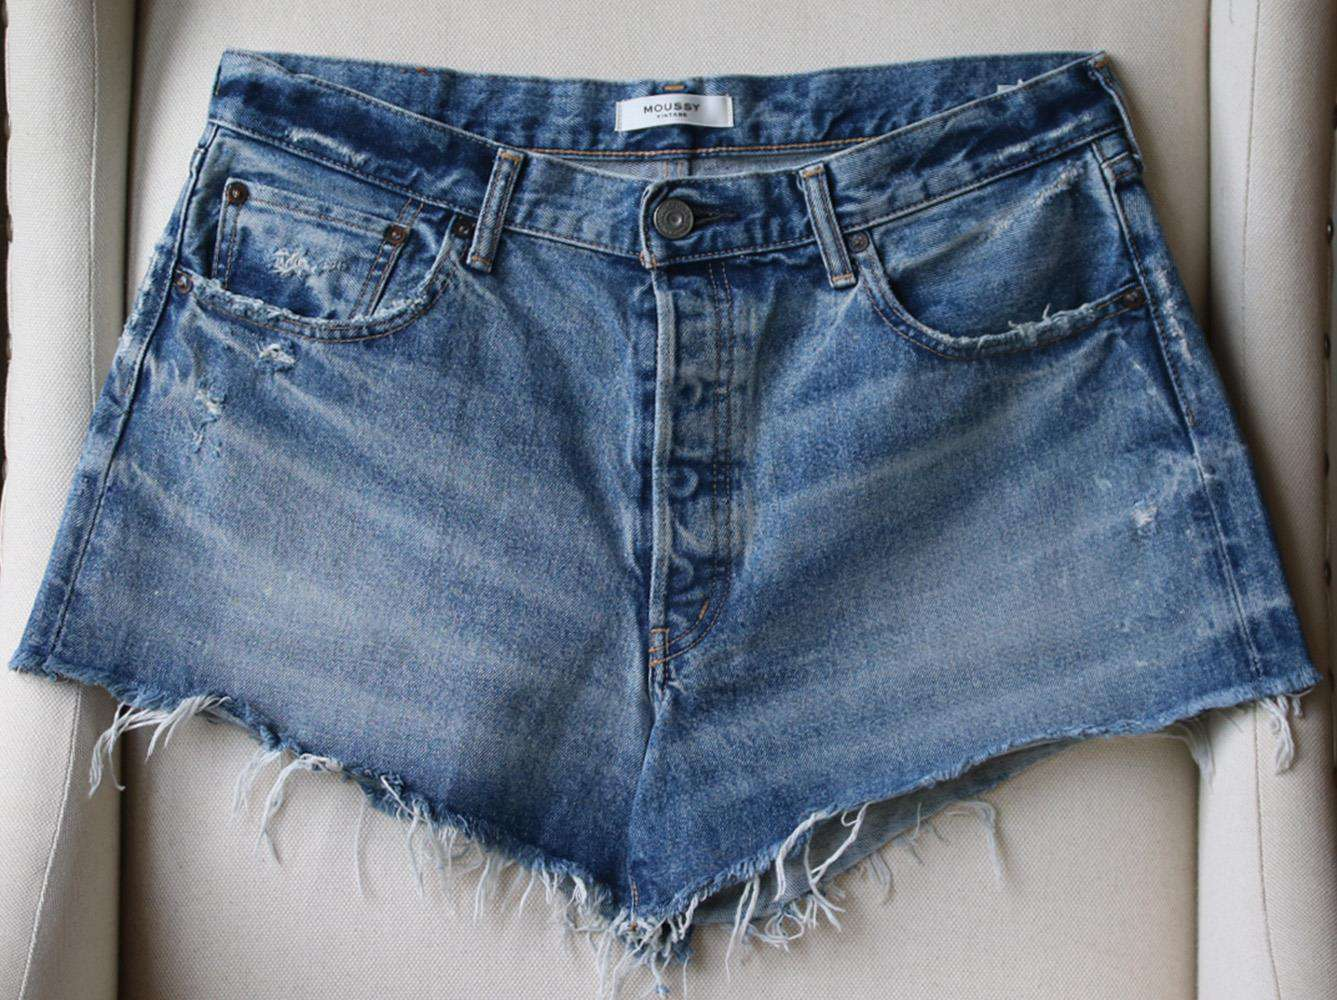 MOUSSY VINTAGE WISCONSIN DISTRESSED SHORTS W30 UK 12